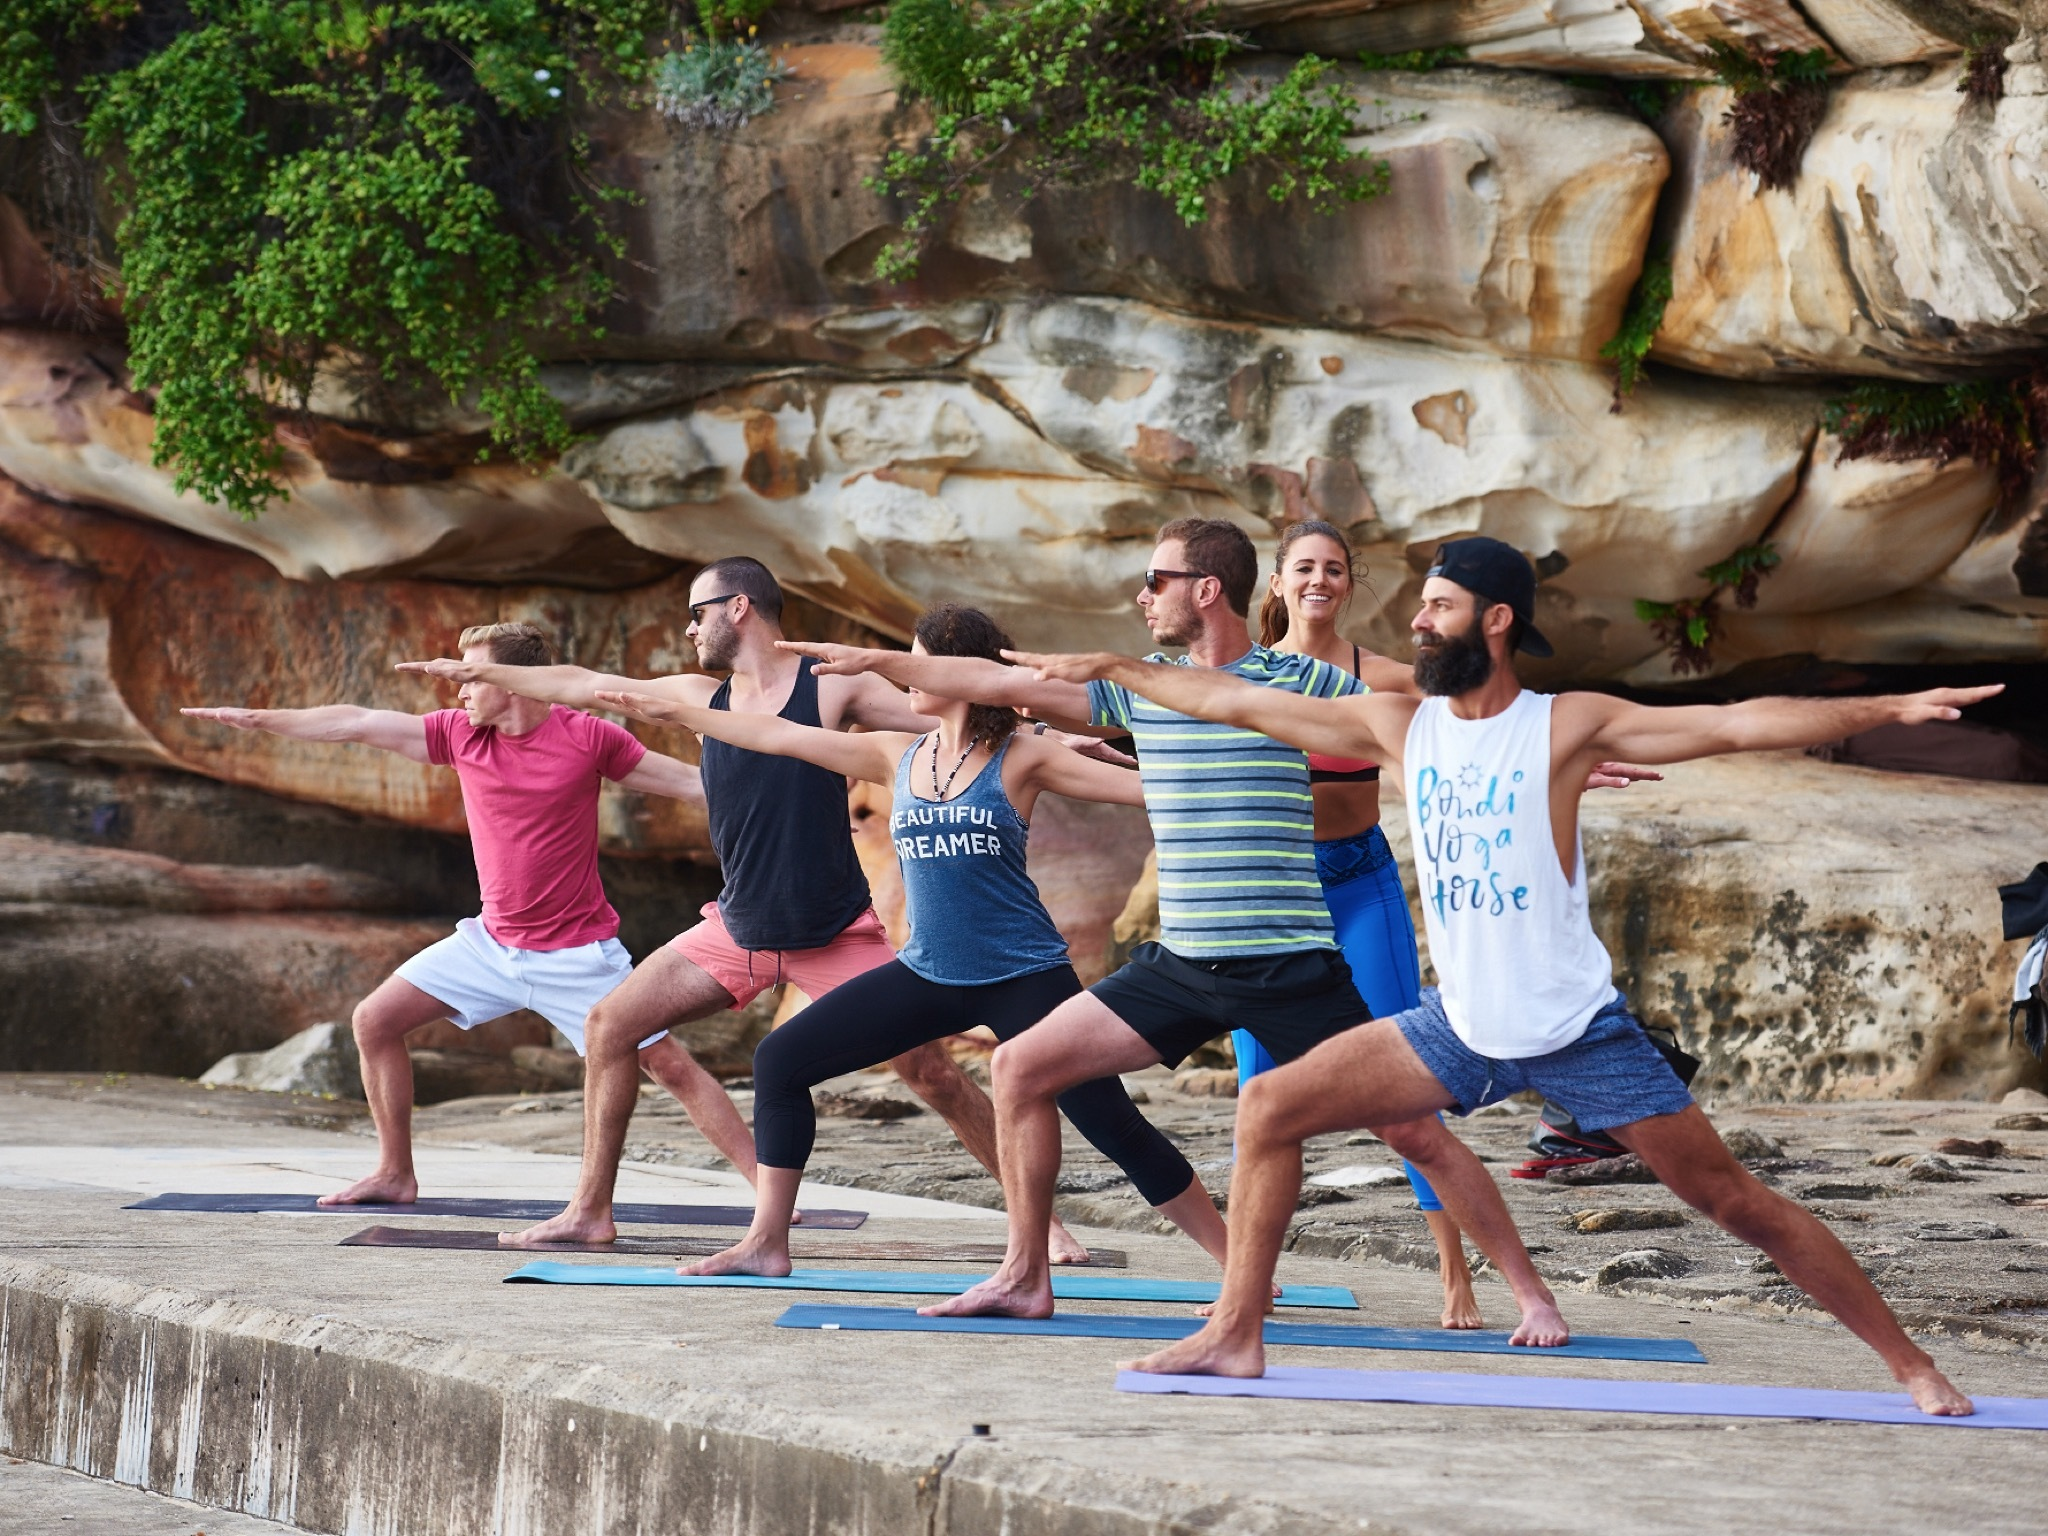 Exercises at Bondi Yoga House